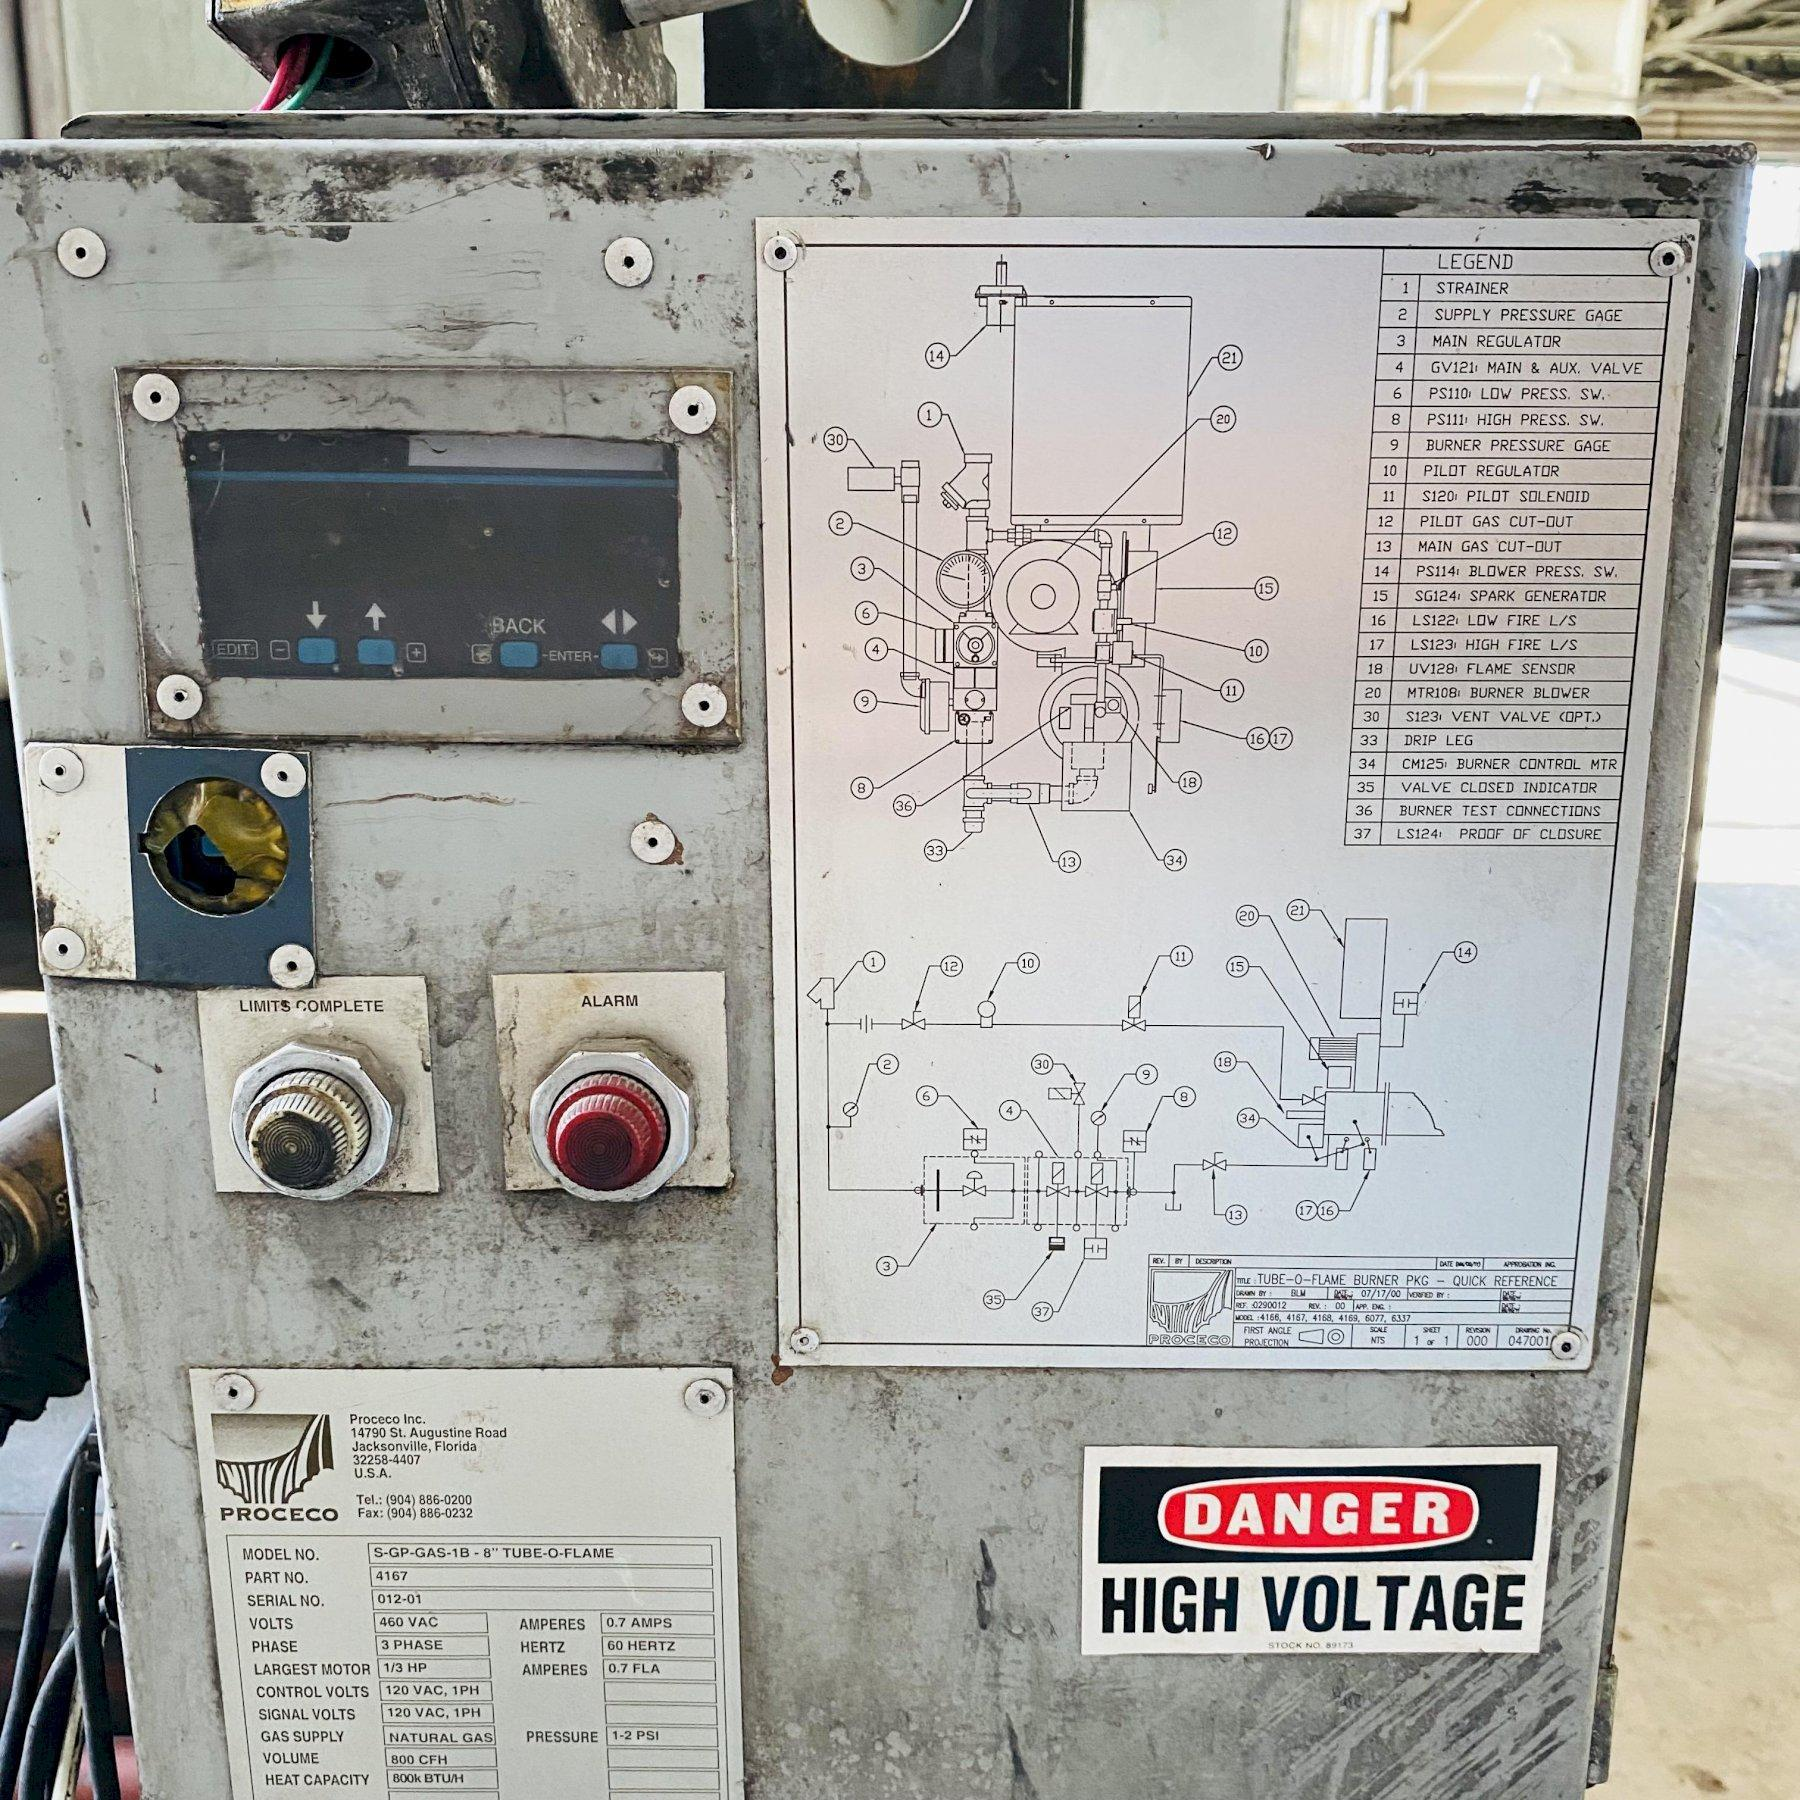 """100"""" PROCECO MODEL #HD-100-48-G-6000 ROTARY TABLE PARTS WASHER. STOCK # 0524021"""